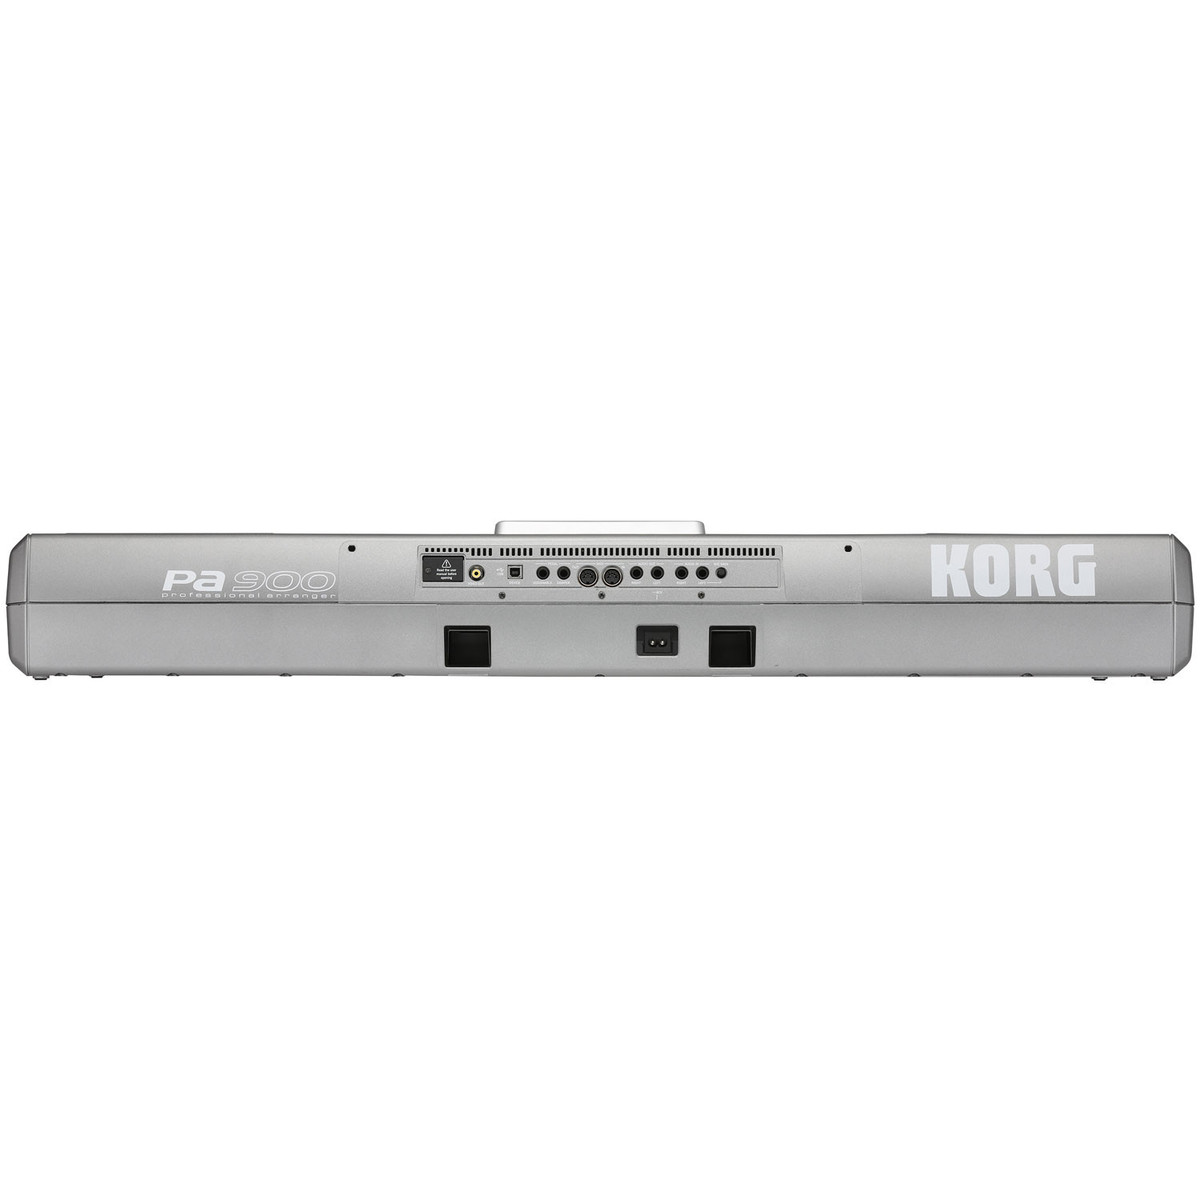 Korg PA900 Professional Arranger Keyboard with Stand and Amplifier 2